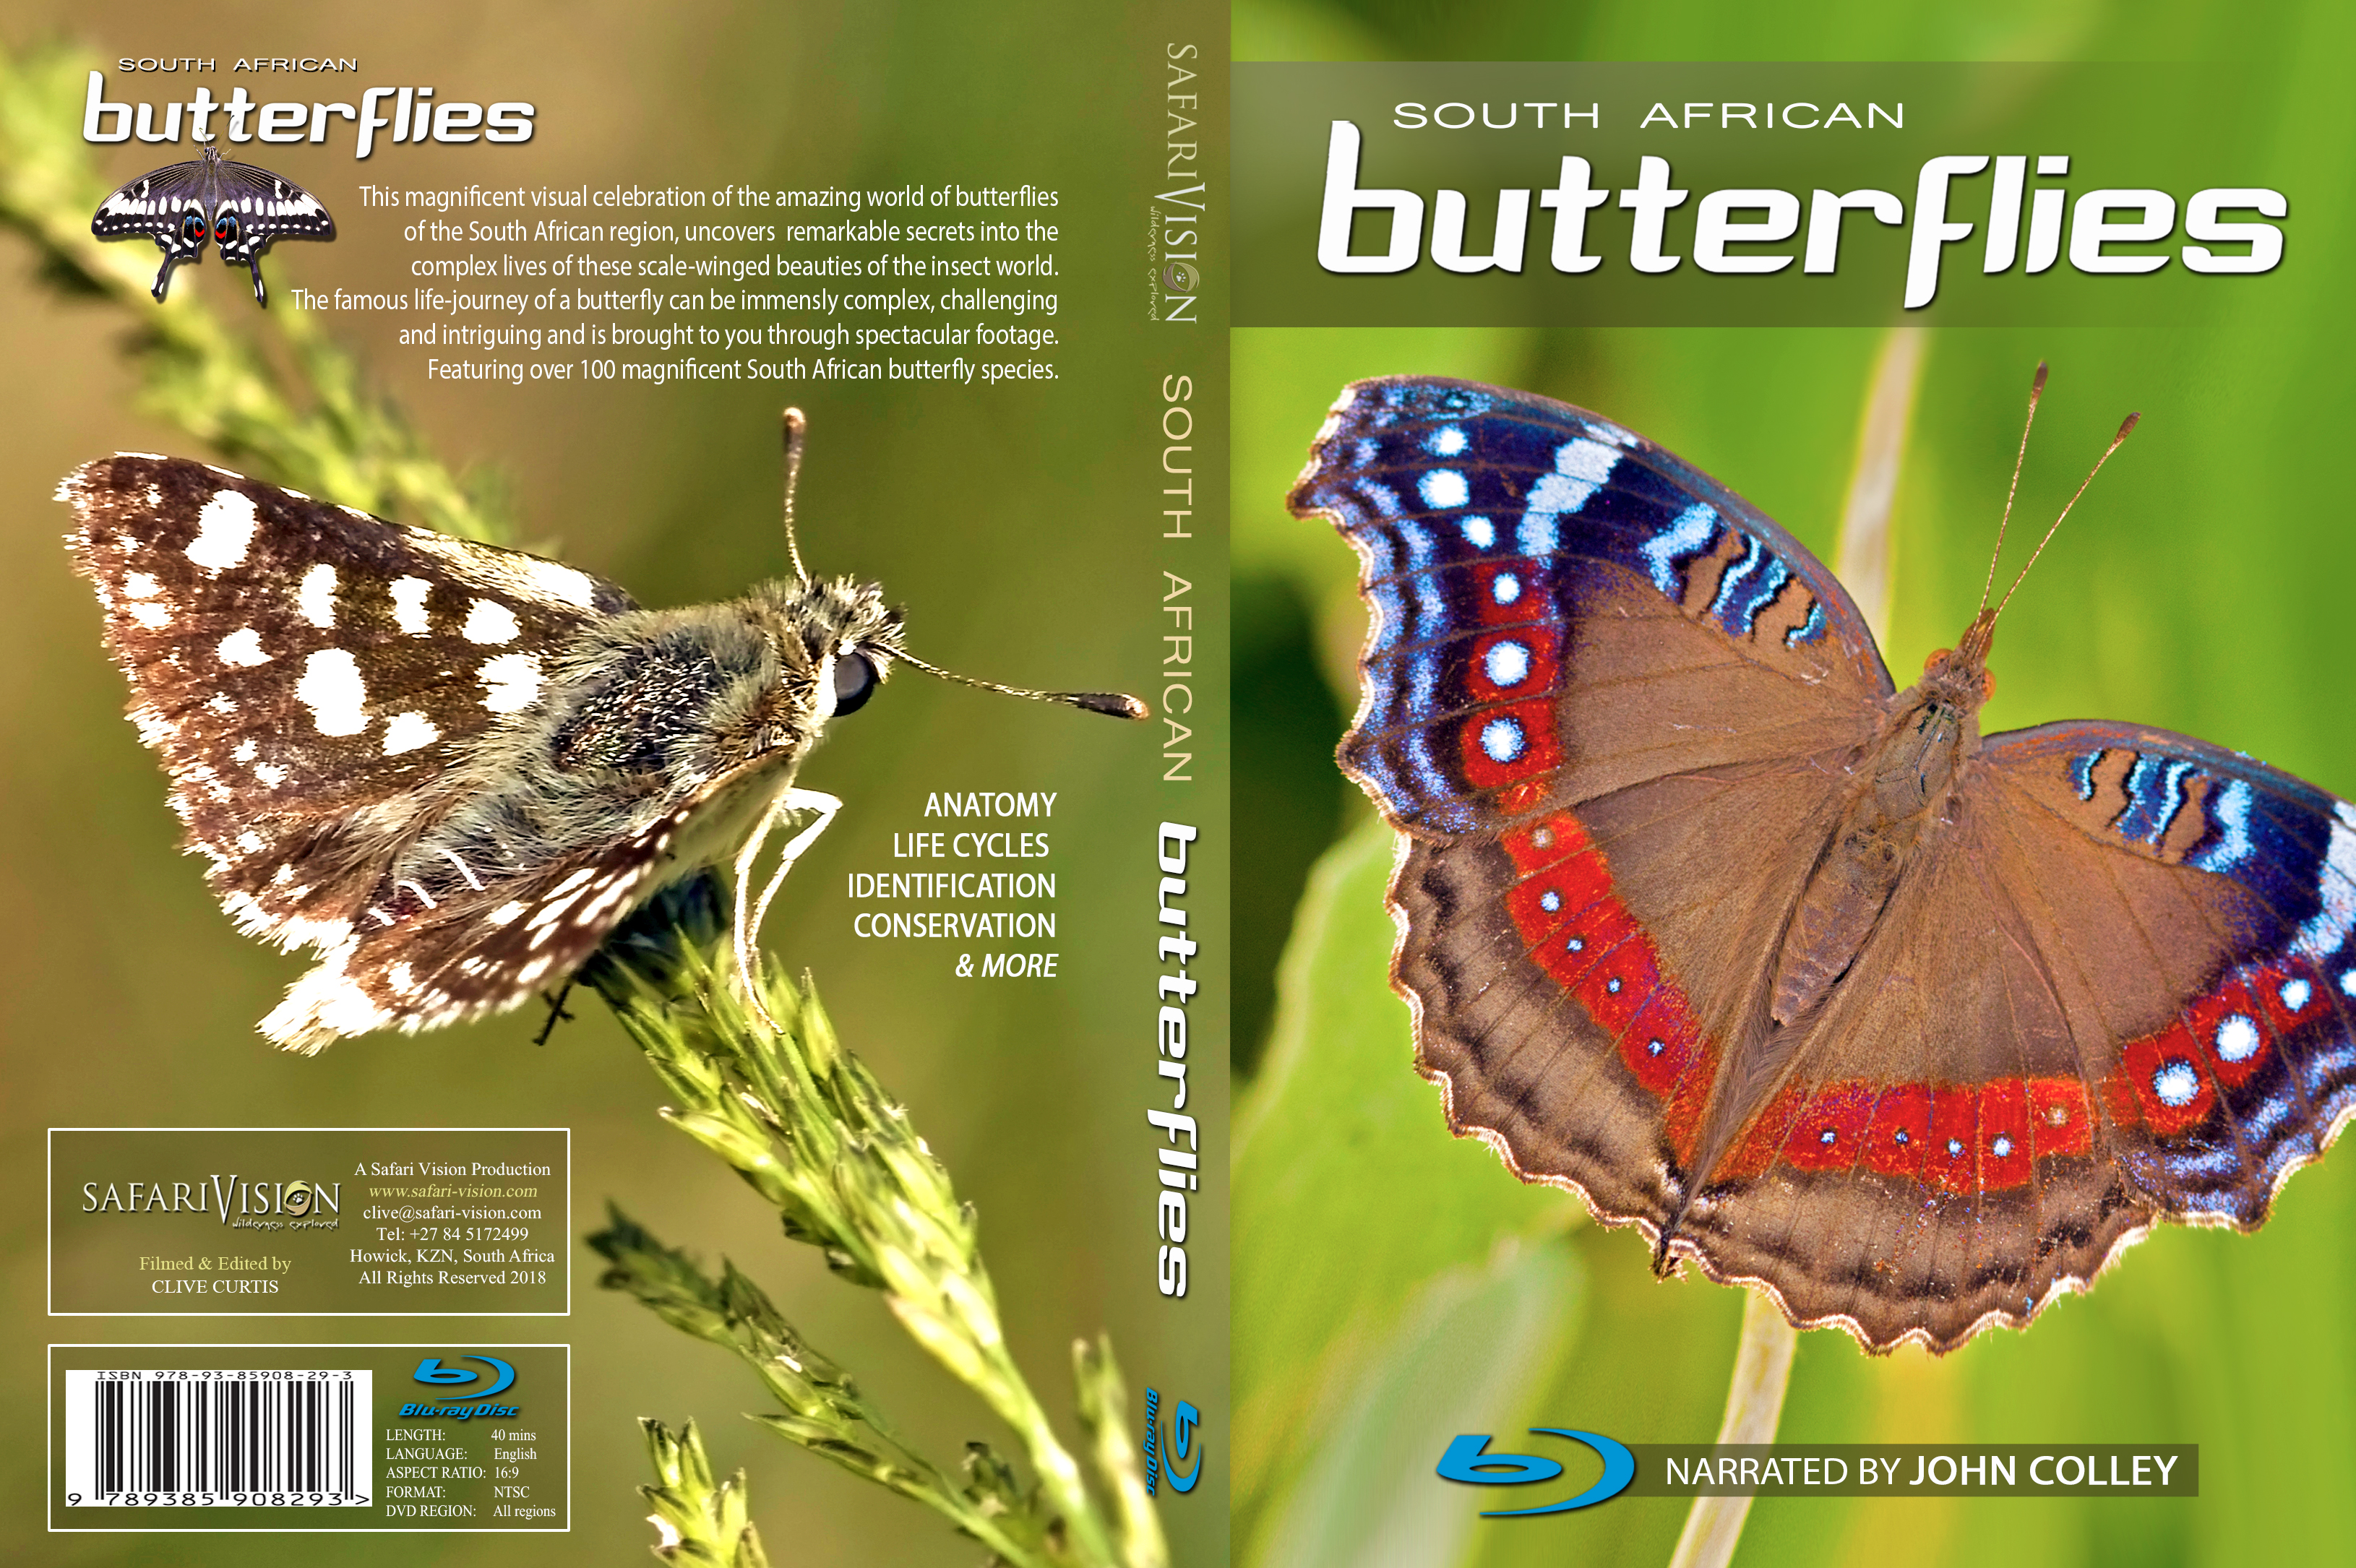 South African Butterflies, a Documentary.